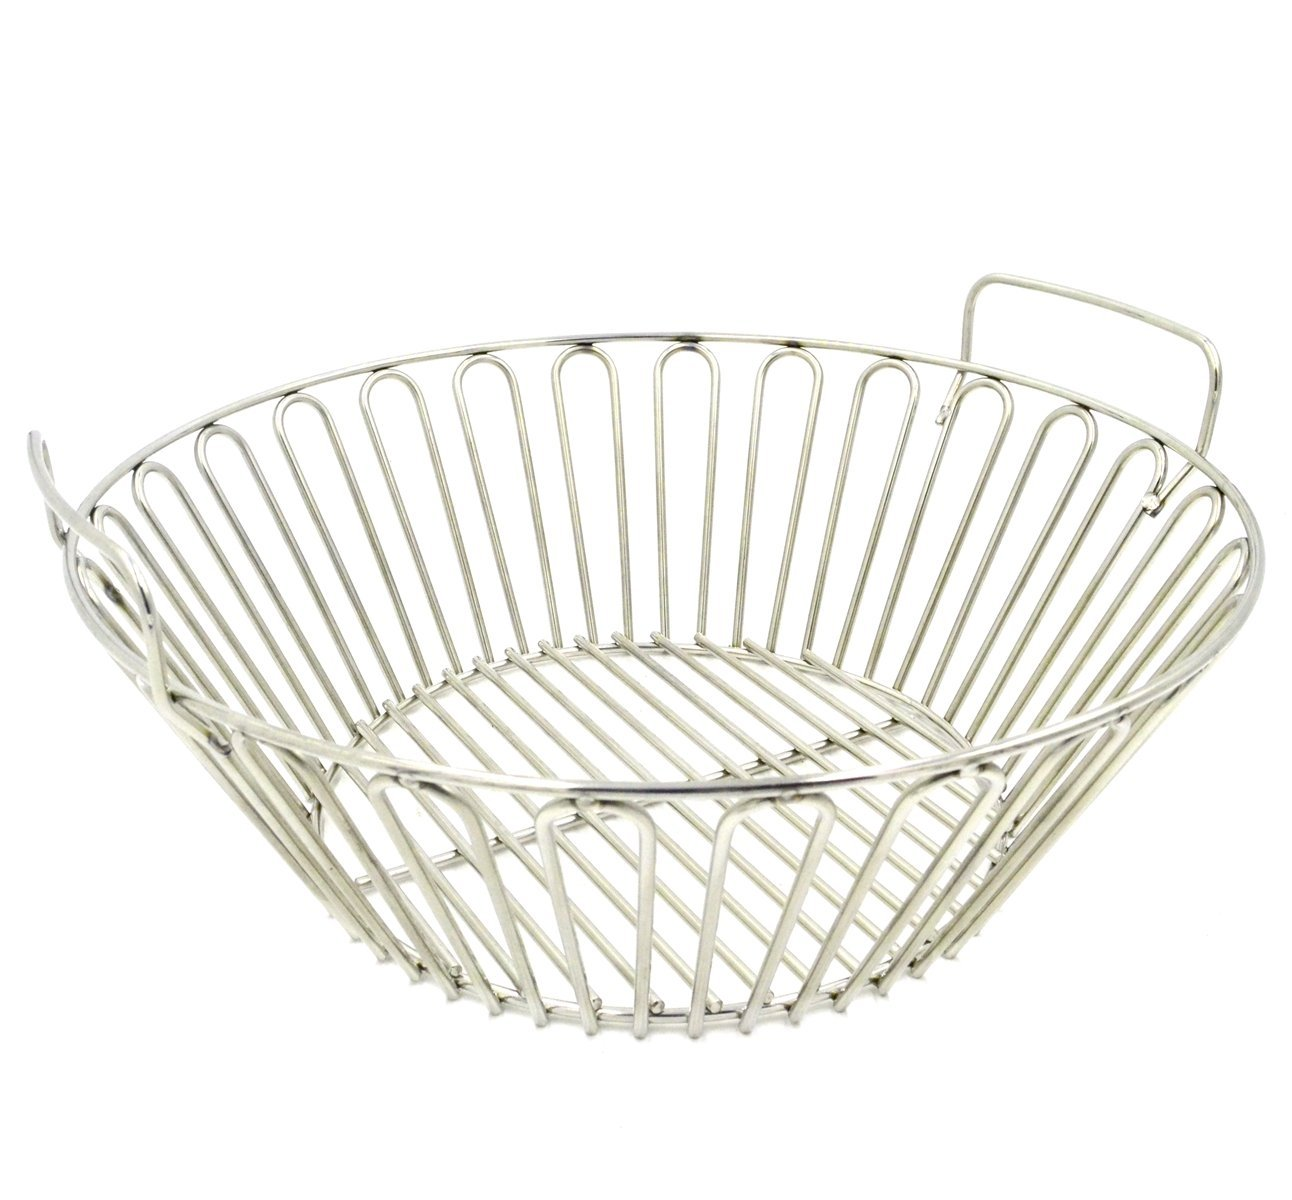 RunTo 13.5 inch Charcoal Ash Basket Fits for Large Big Green Egg Grill, Kamado Joe Classic, Pit Boss, Louisiana Grills,Primo Kamado Grill and other Grills